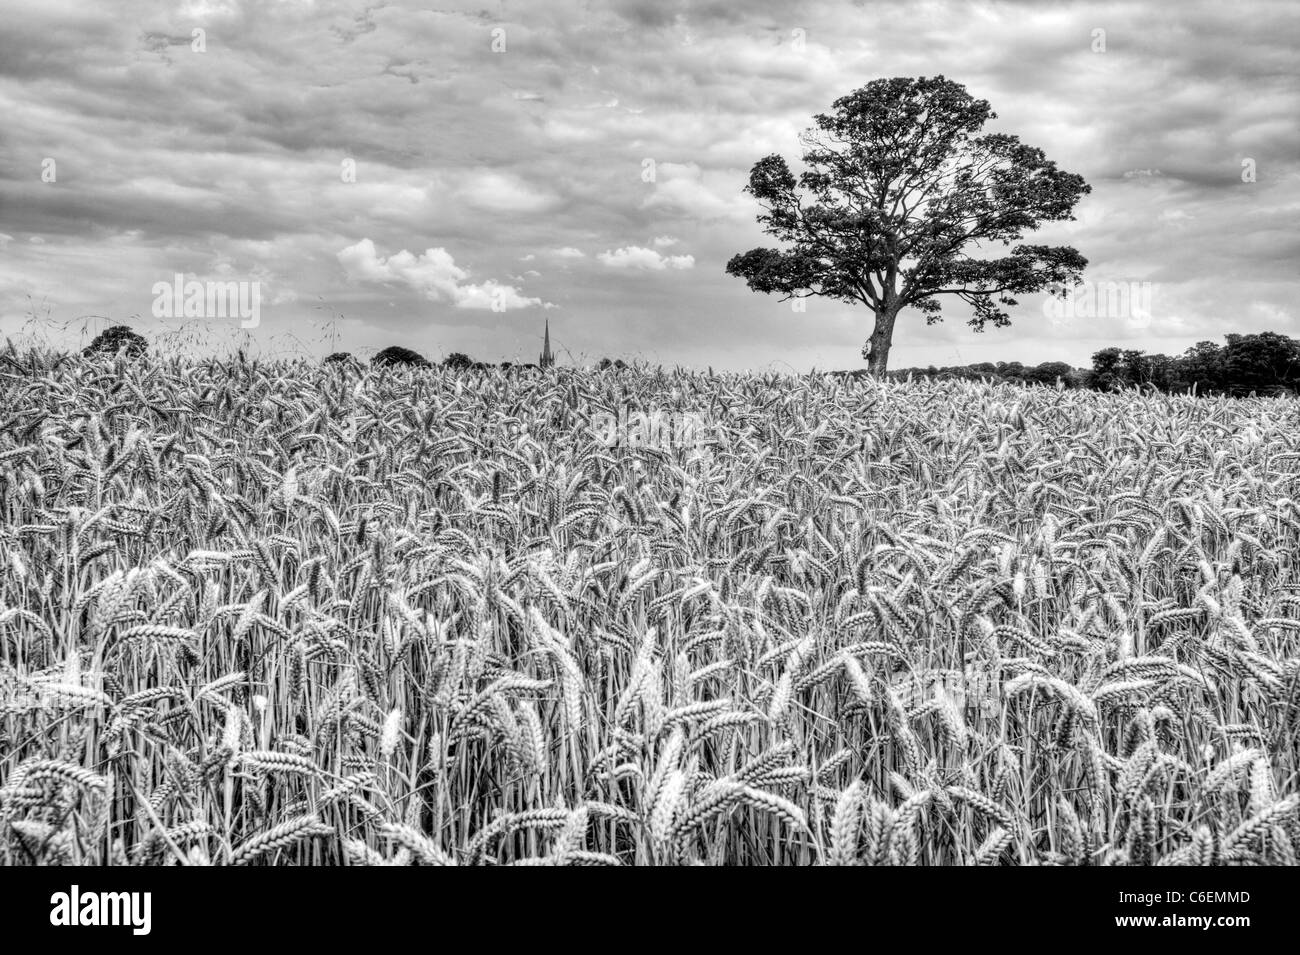 Farmers field of wheat in Louth, Lincolnshire, England. Lone tree on land HDR tonemapped to add drama to image - Stock Image